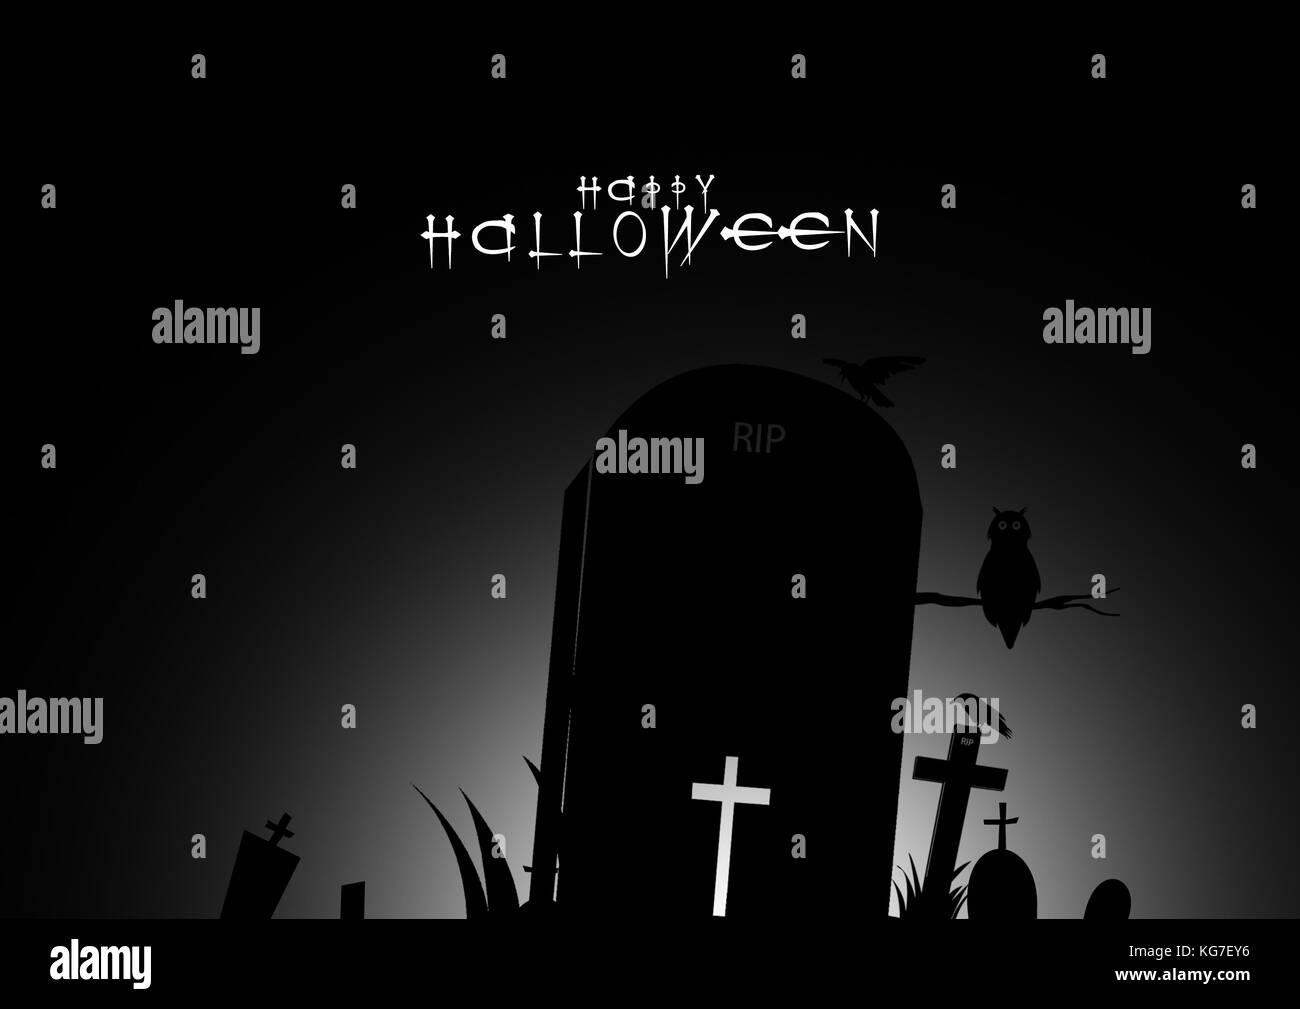 happy halloween text banner black and white design background stock